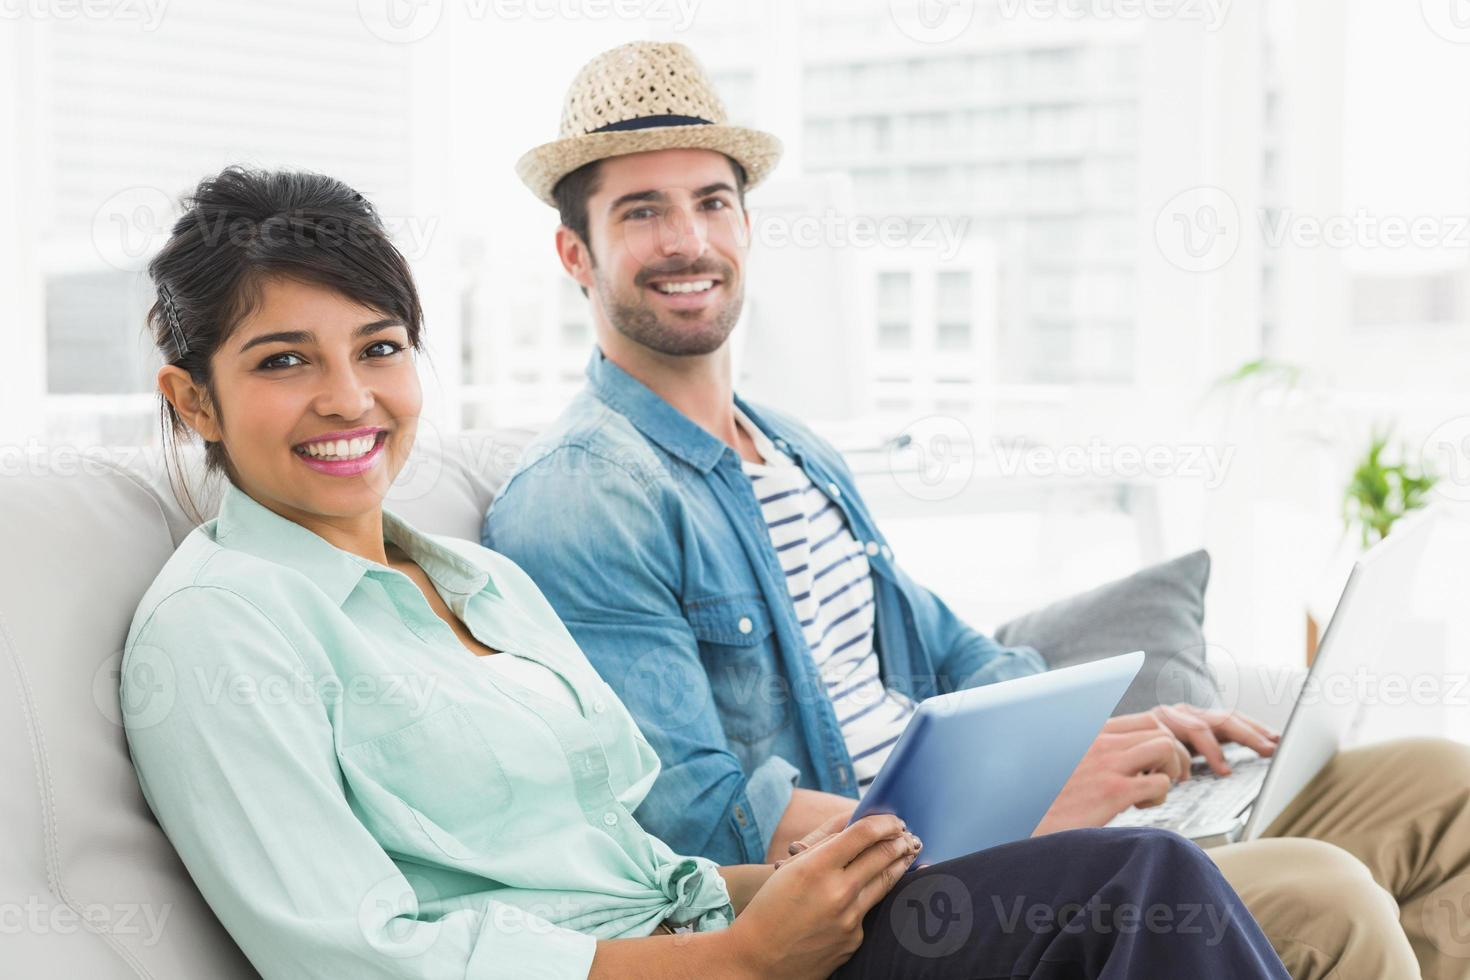 Smiling coworkers using tablet and laptop on couch photo